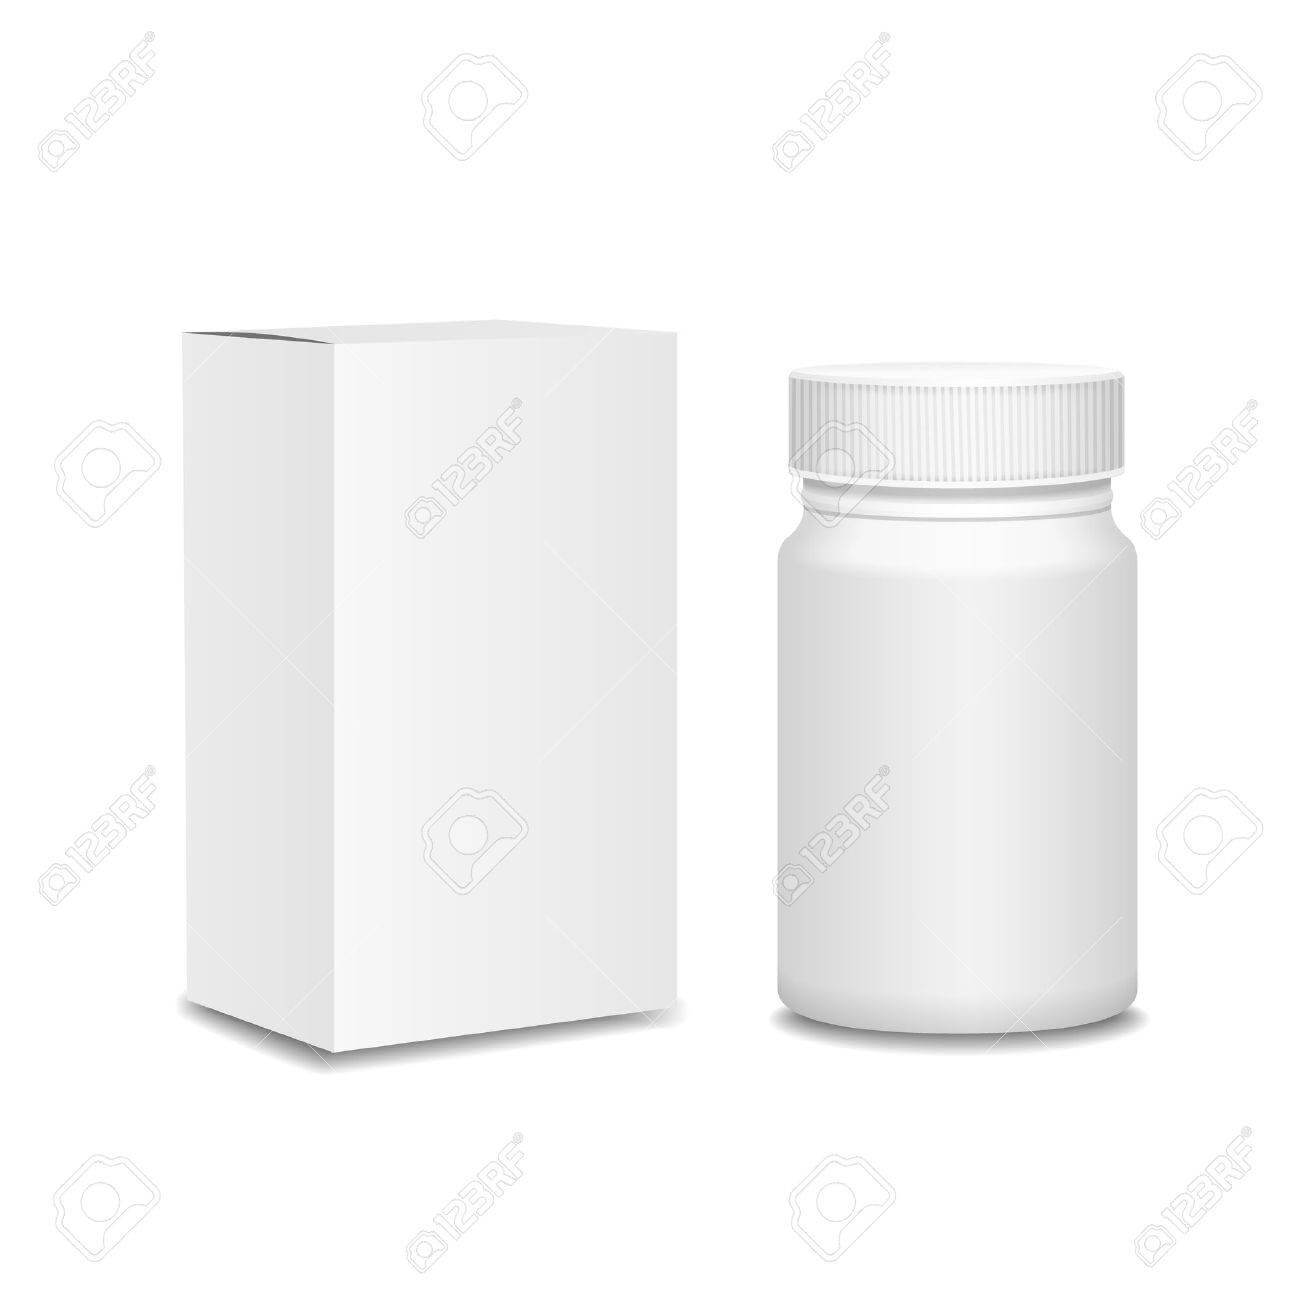 Blank Medicine Bottle And Cardboard Packaging, Vitamins, Examples.. Regarding Blank Packaging Templates